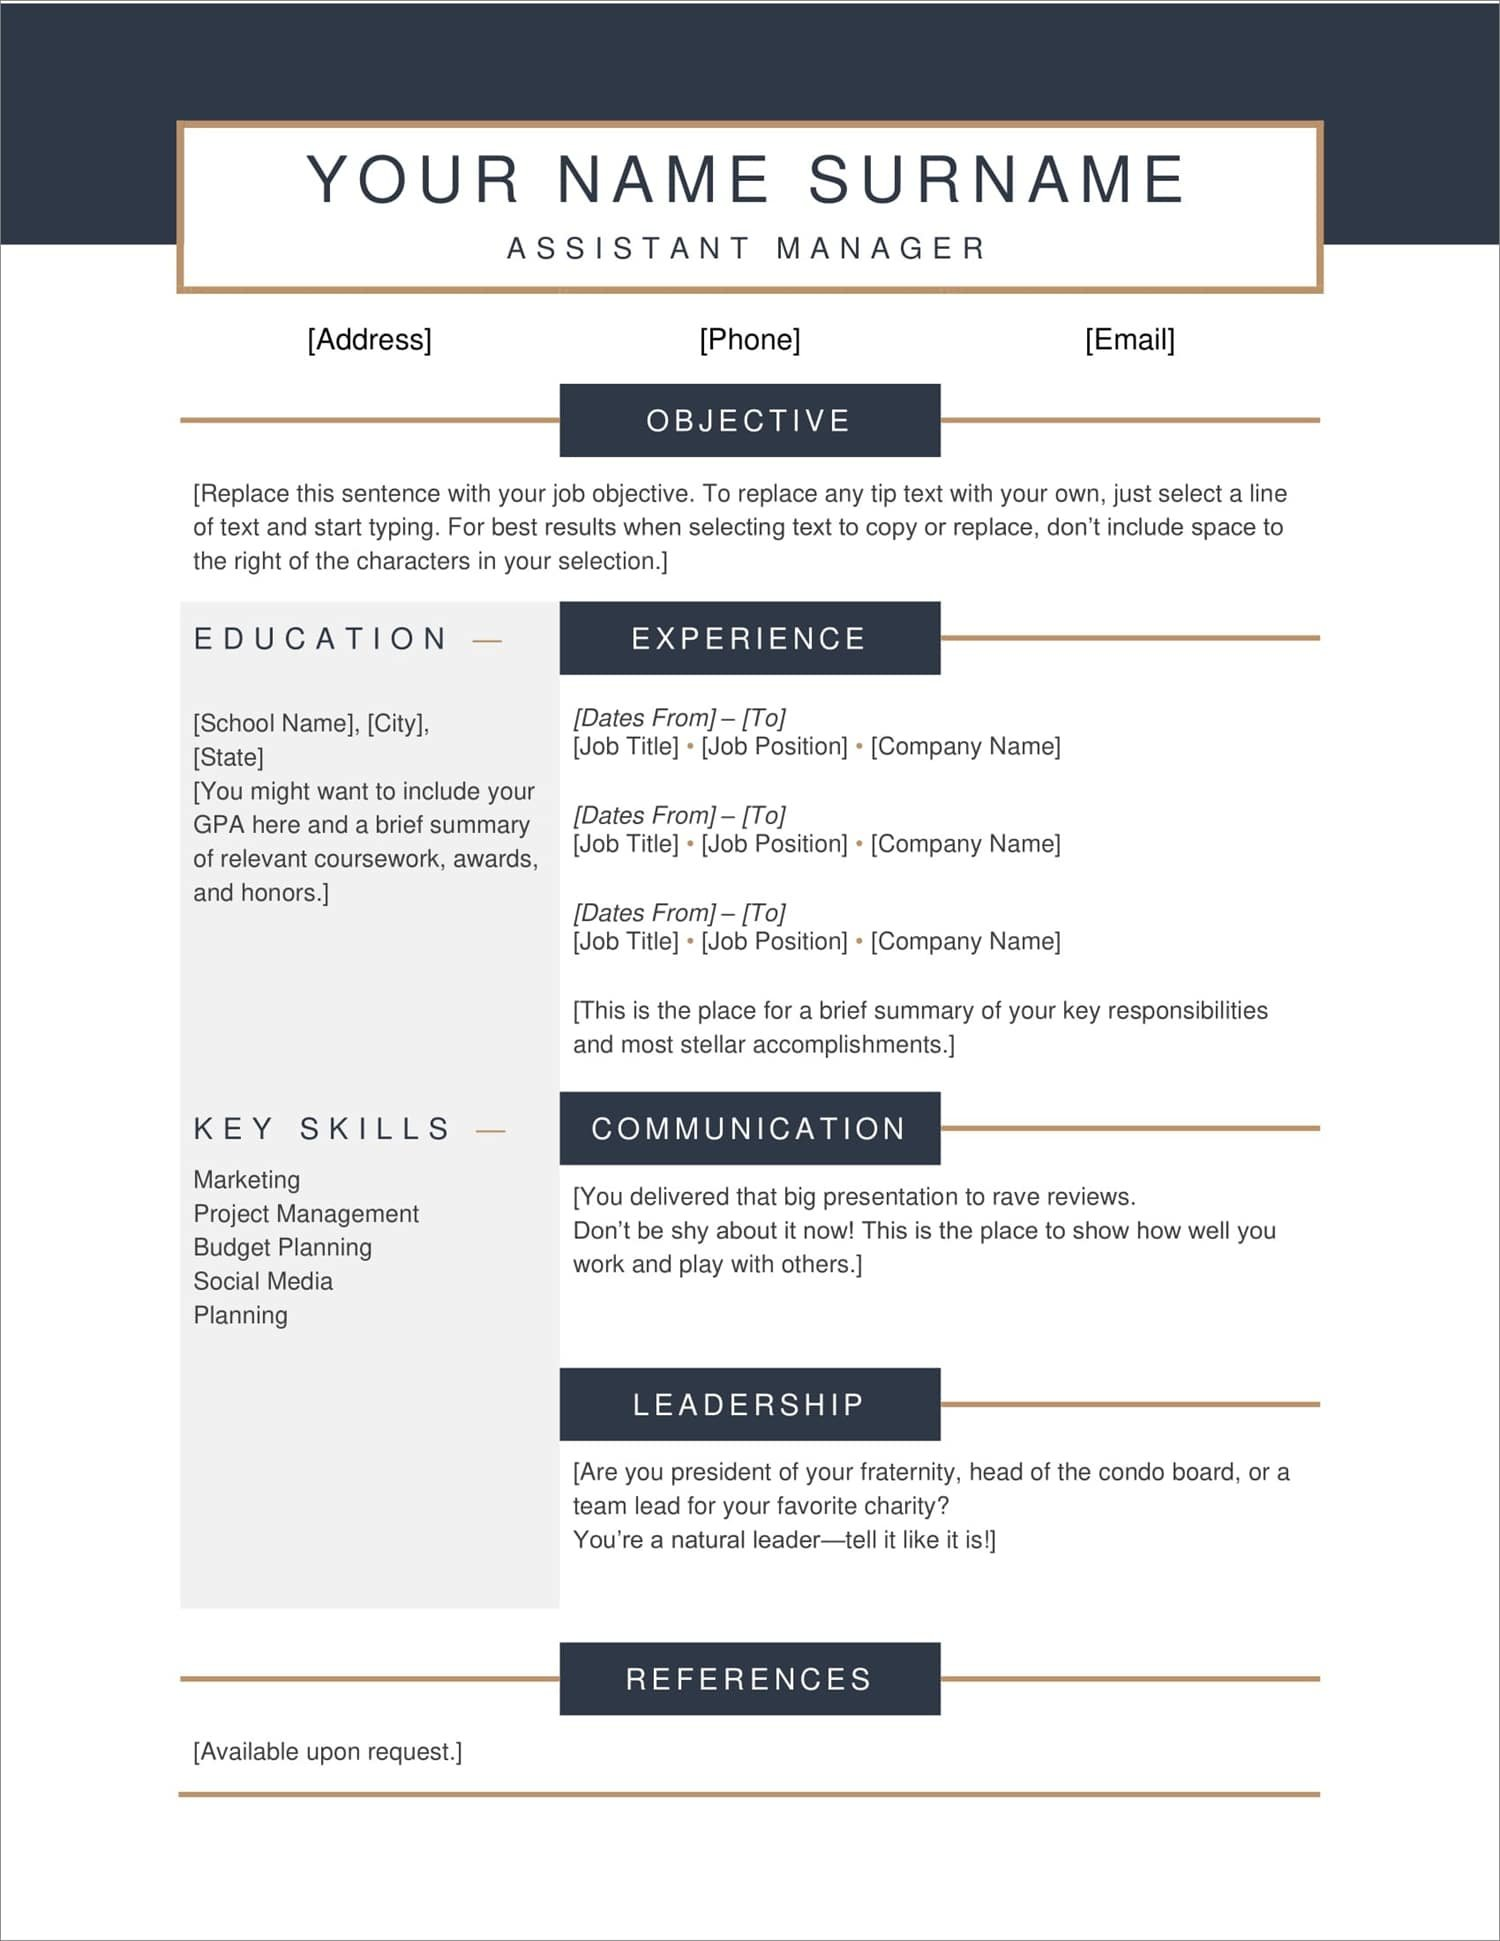 free resume templates for to now create pdf new mechanical engineer summary physical Resume Create Resume Pdf Free